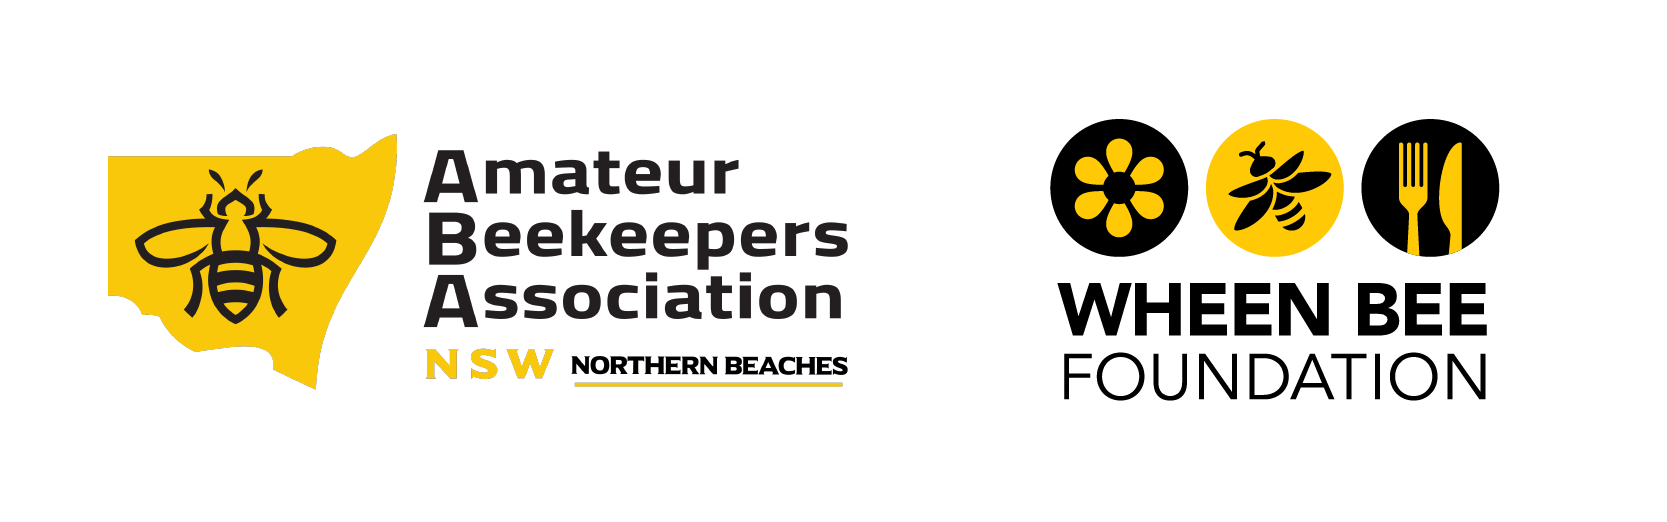 Amateur Beekeepers association and The Wheen Bee Foundation  Poster